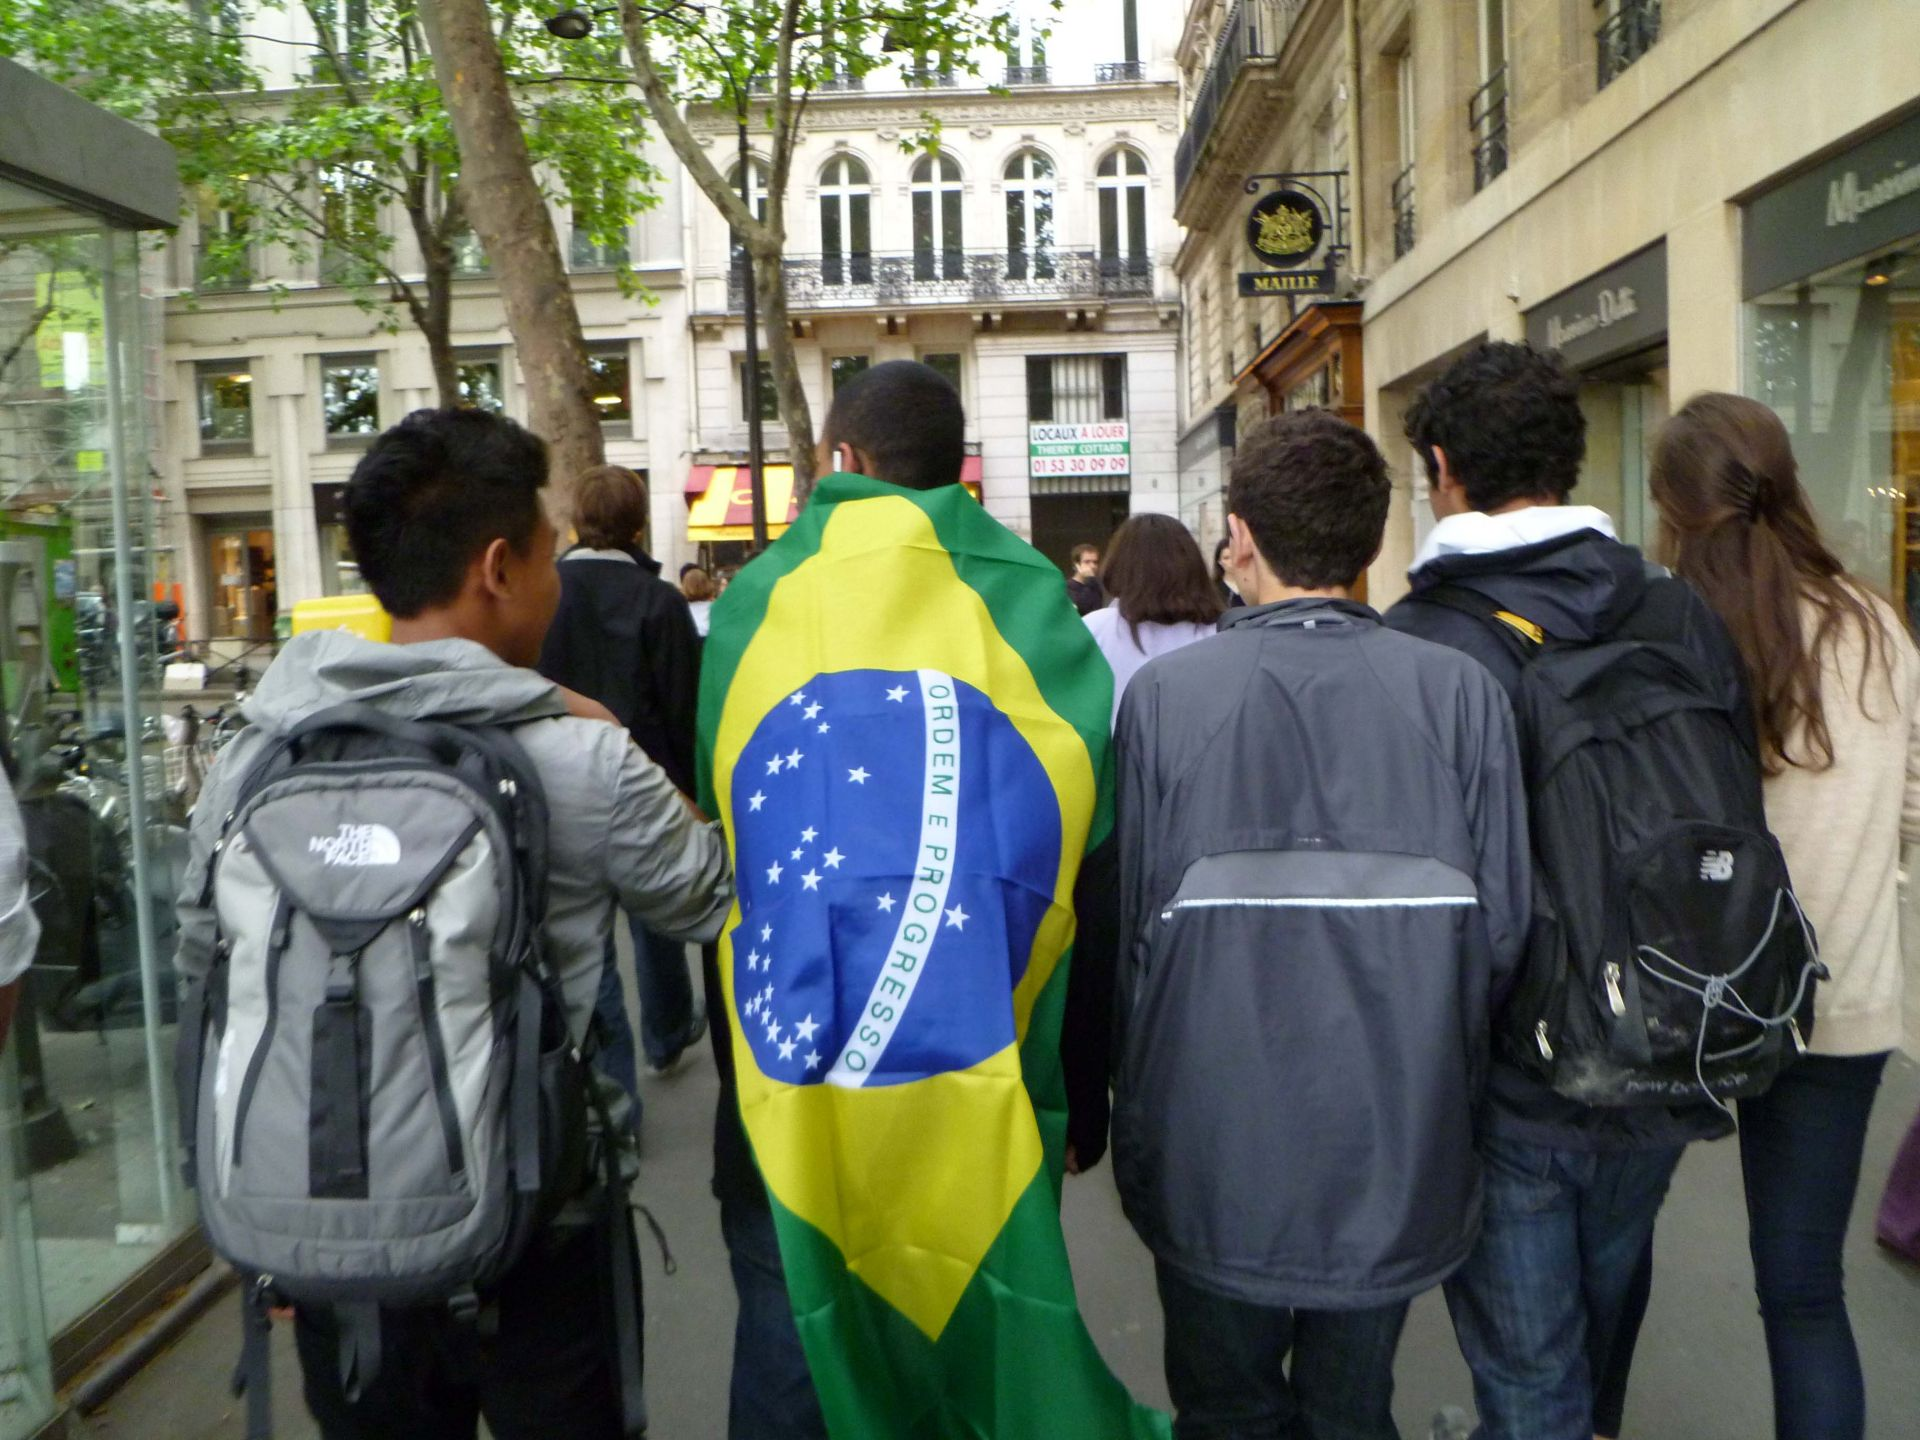 Students traversed Paris amid World Cup fever. One Brazilian student showed his pride.